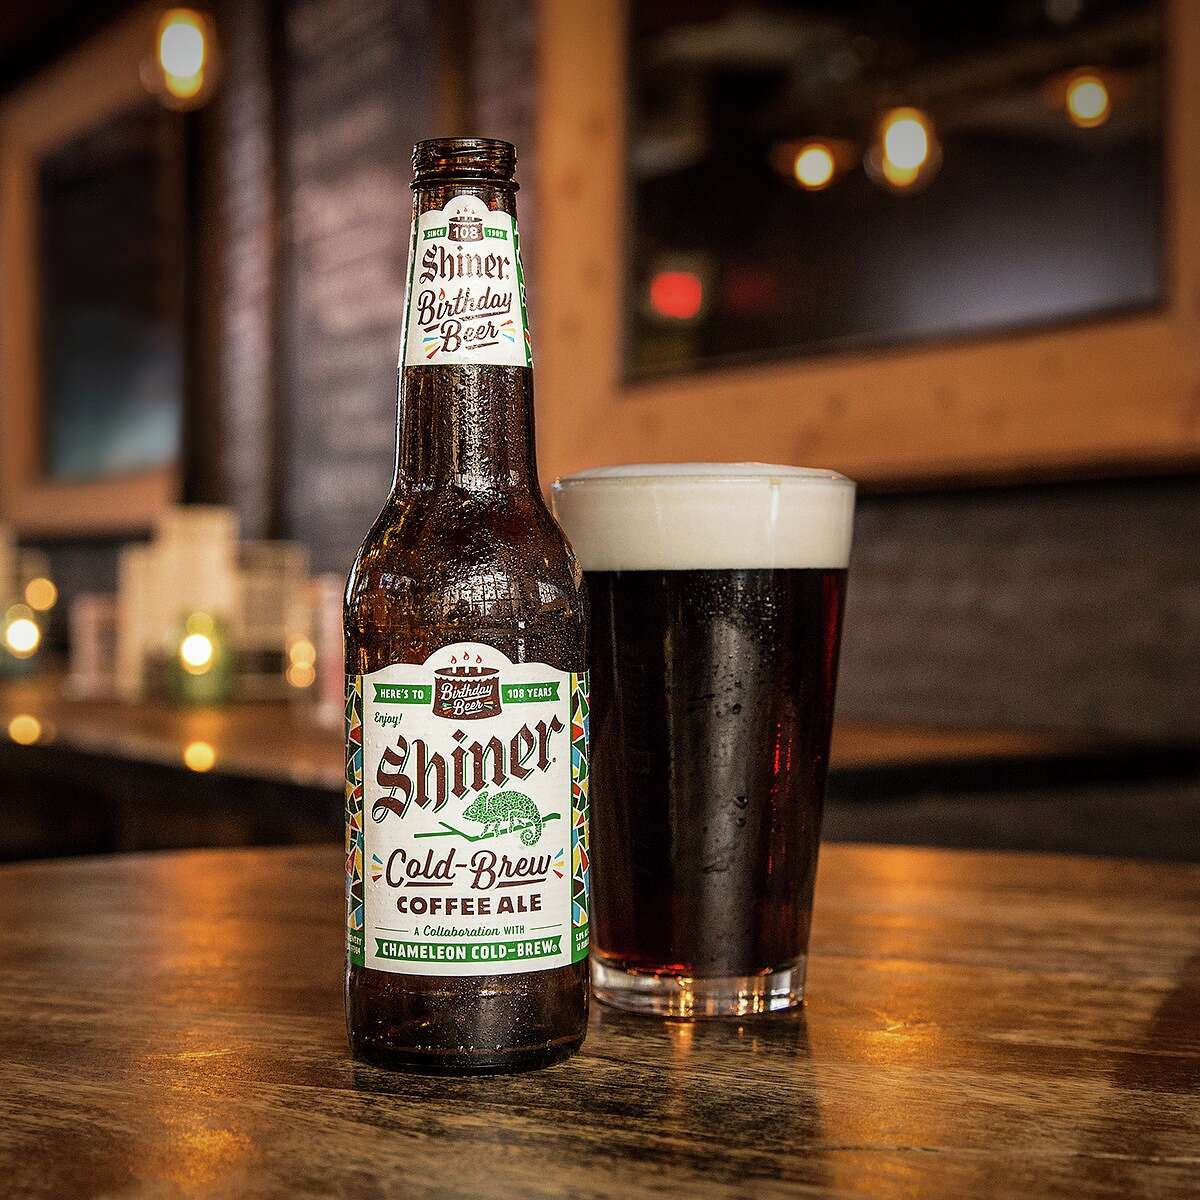 SHINER FACTS: Cool Facts about Shiner everyone should know For its 108th birthday Shiner Beer collaborated with Austin's Chameleon Cold Brew to make a coffee-laden beer, available for a limited time. Click through to learn more about Shiner Beer....